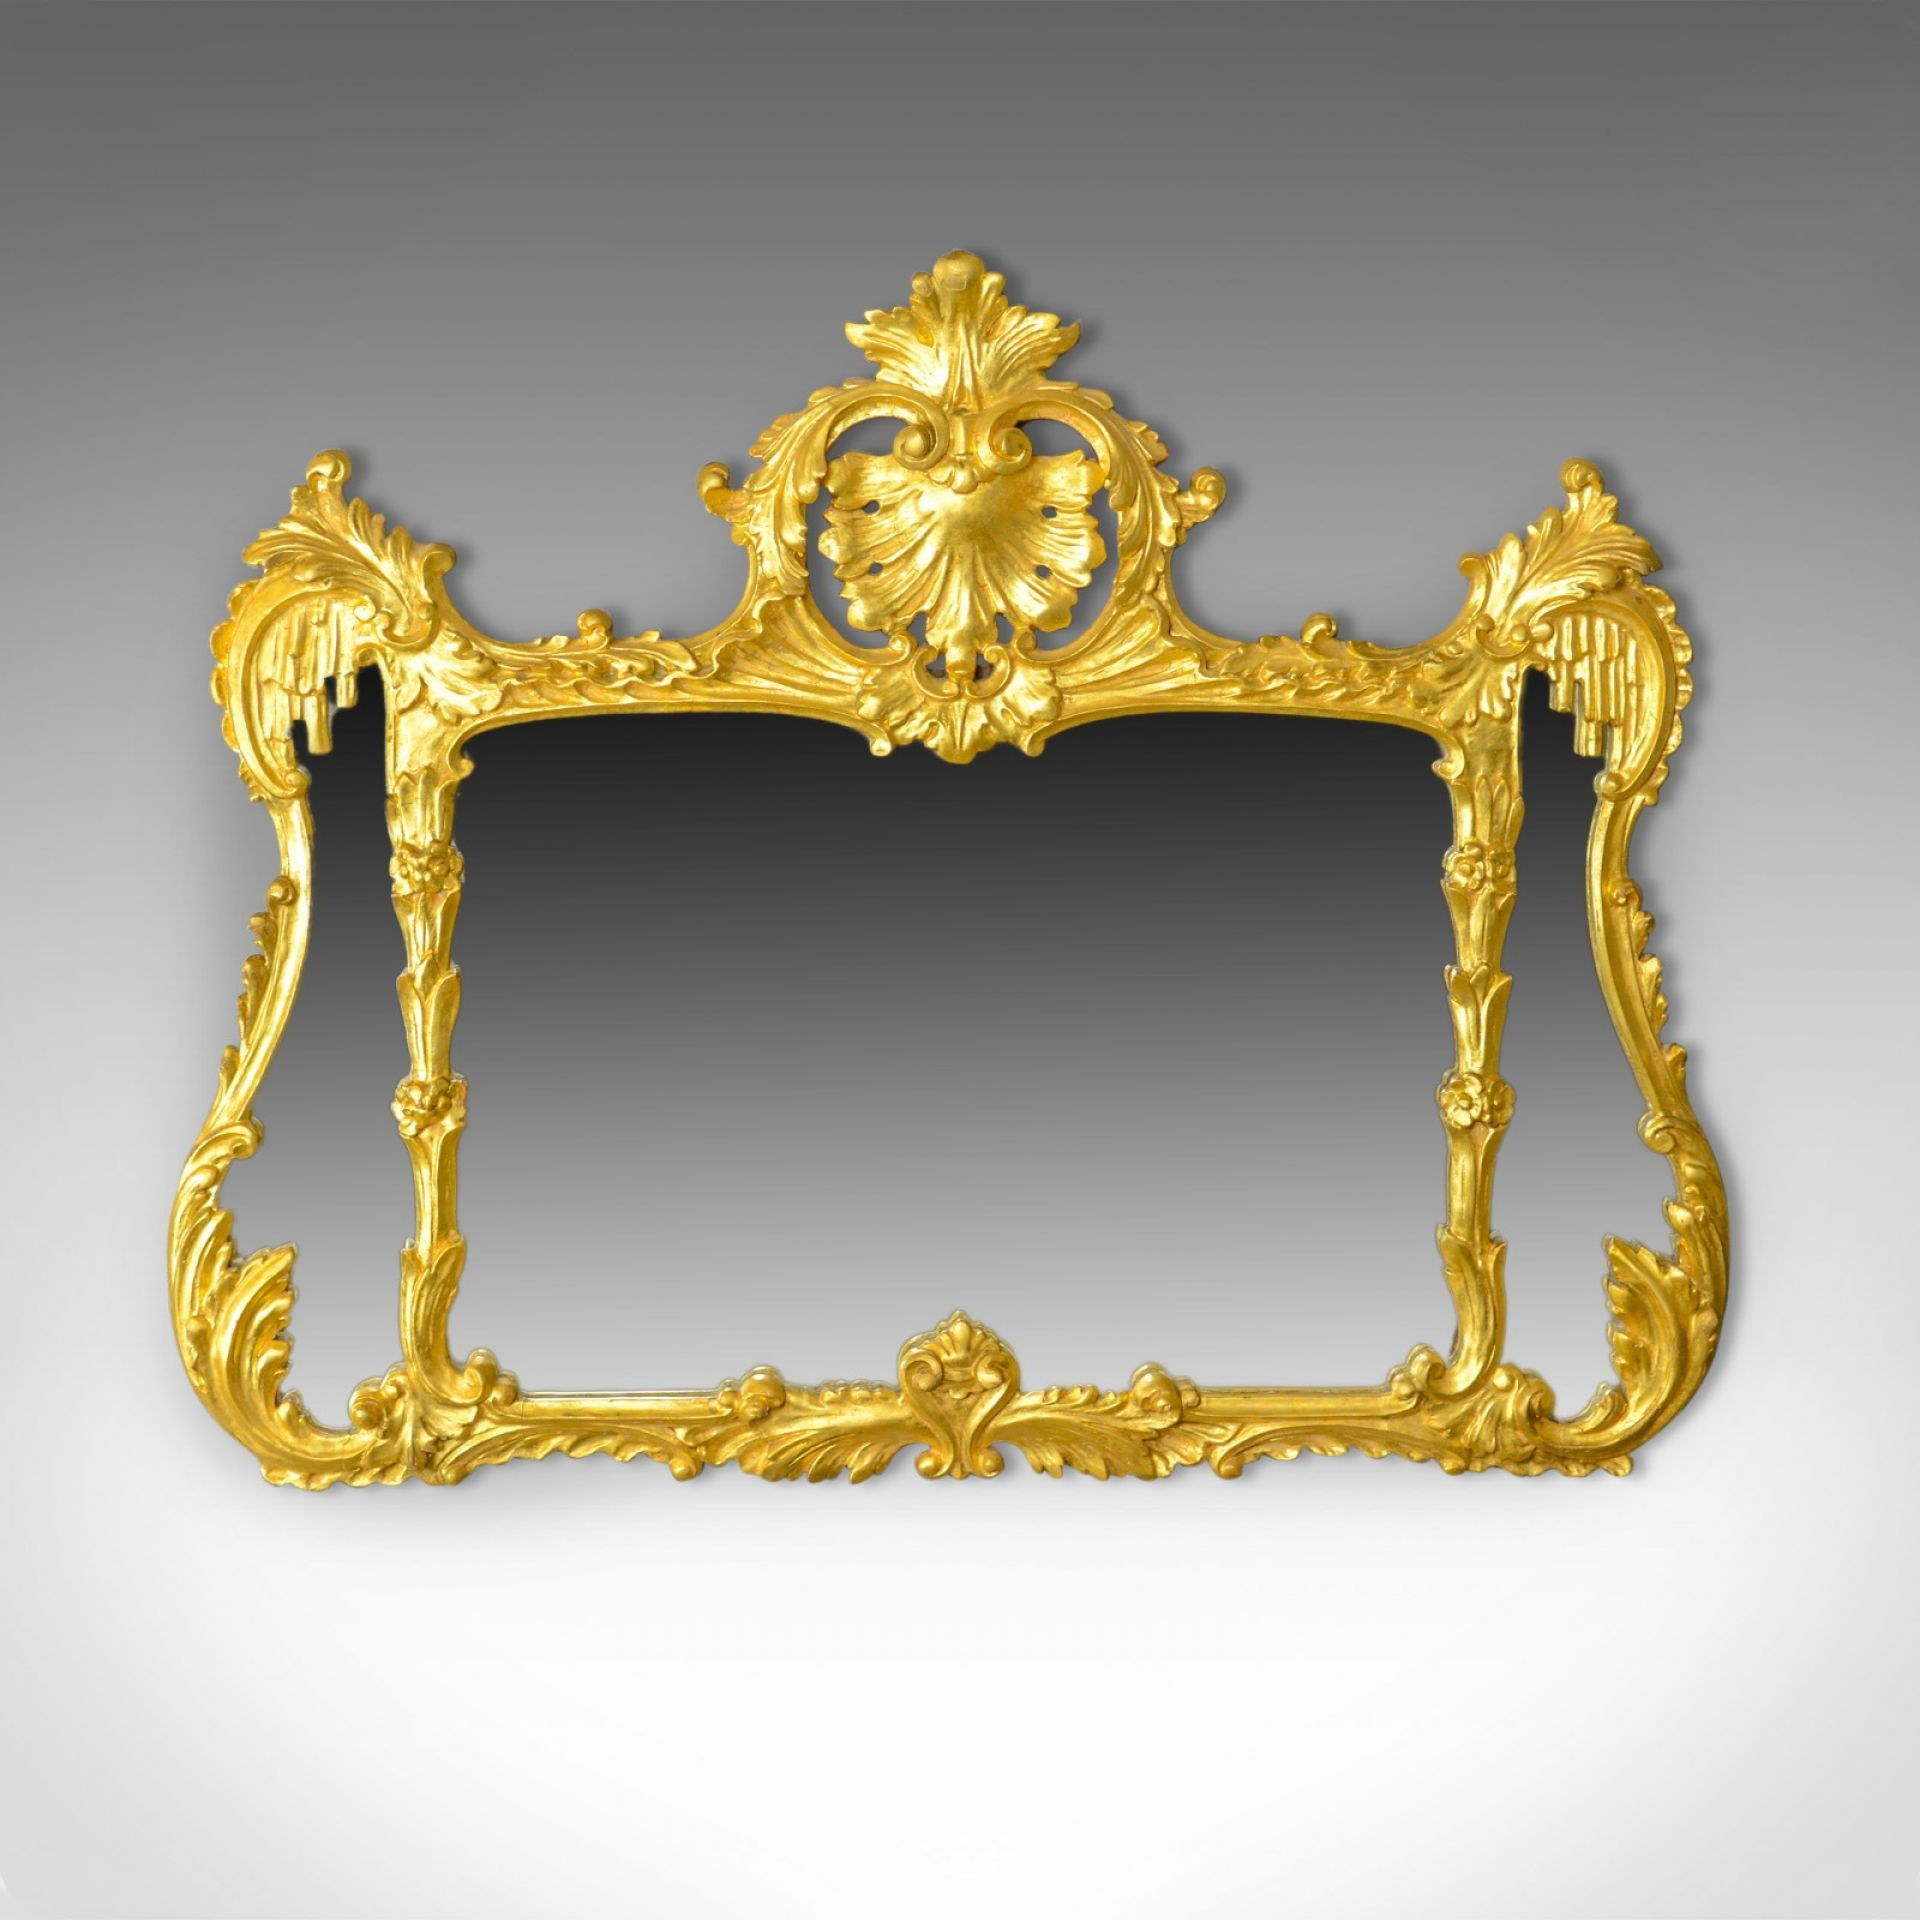 Antique Overmantel Mirror, English, Giltwood, Wall, Triptych, Circa 1920